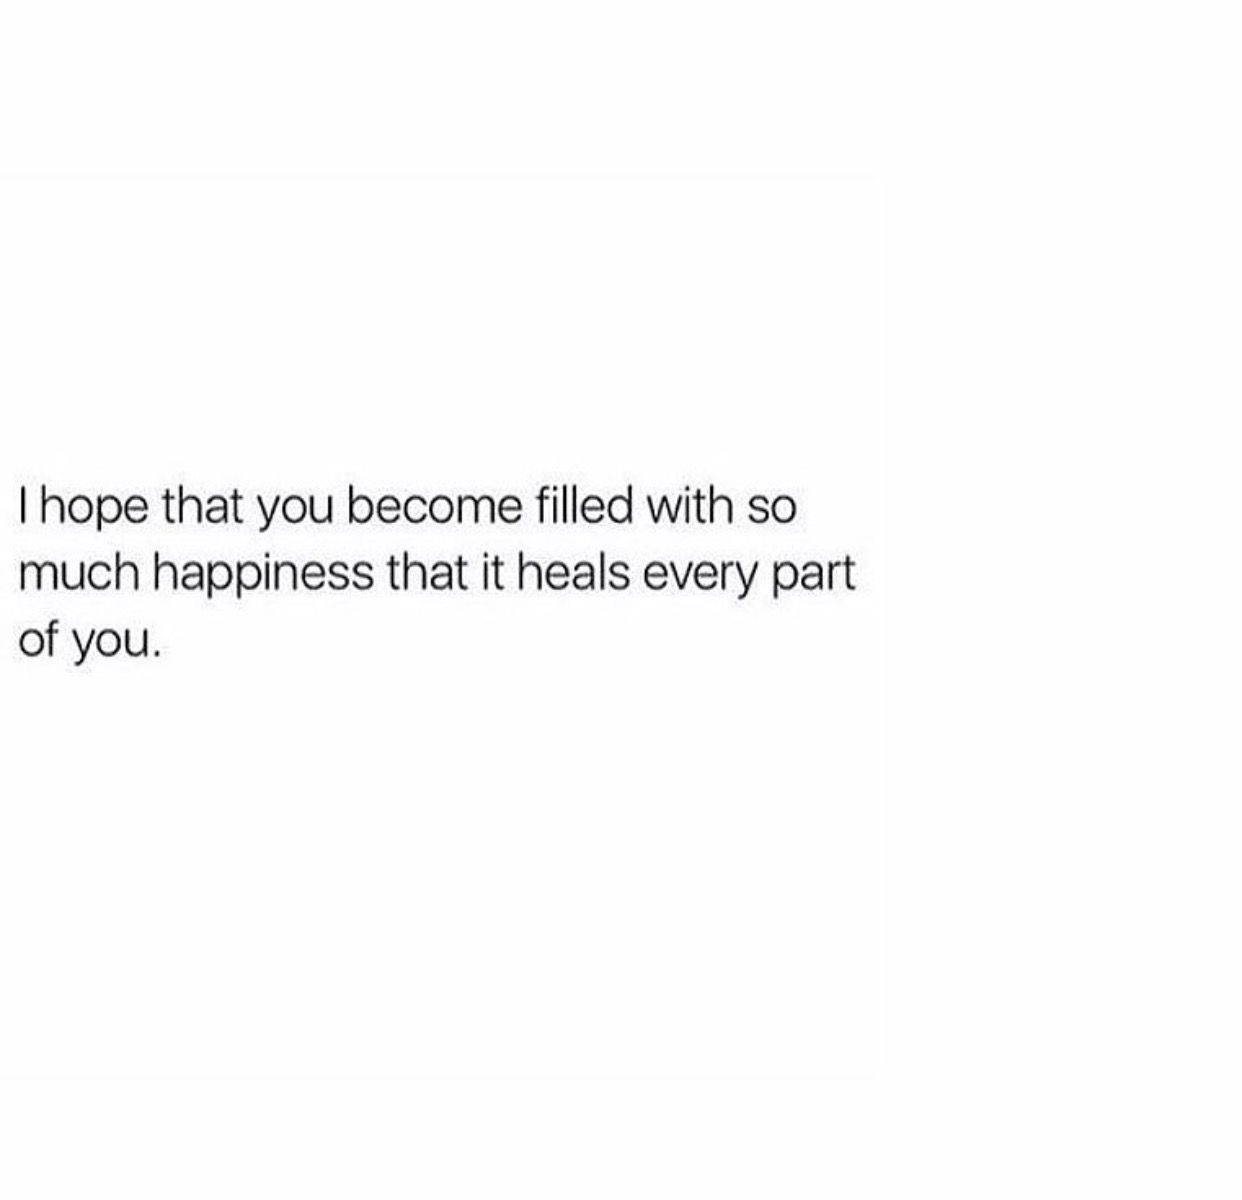 Relatable Quotes Pinjossy 🐘💜 On Relatable Quotes & Poems  Pinterest  Real